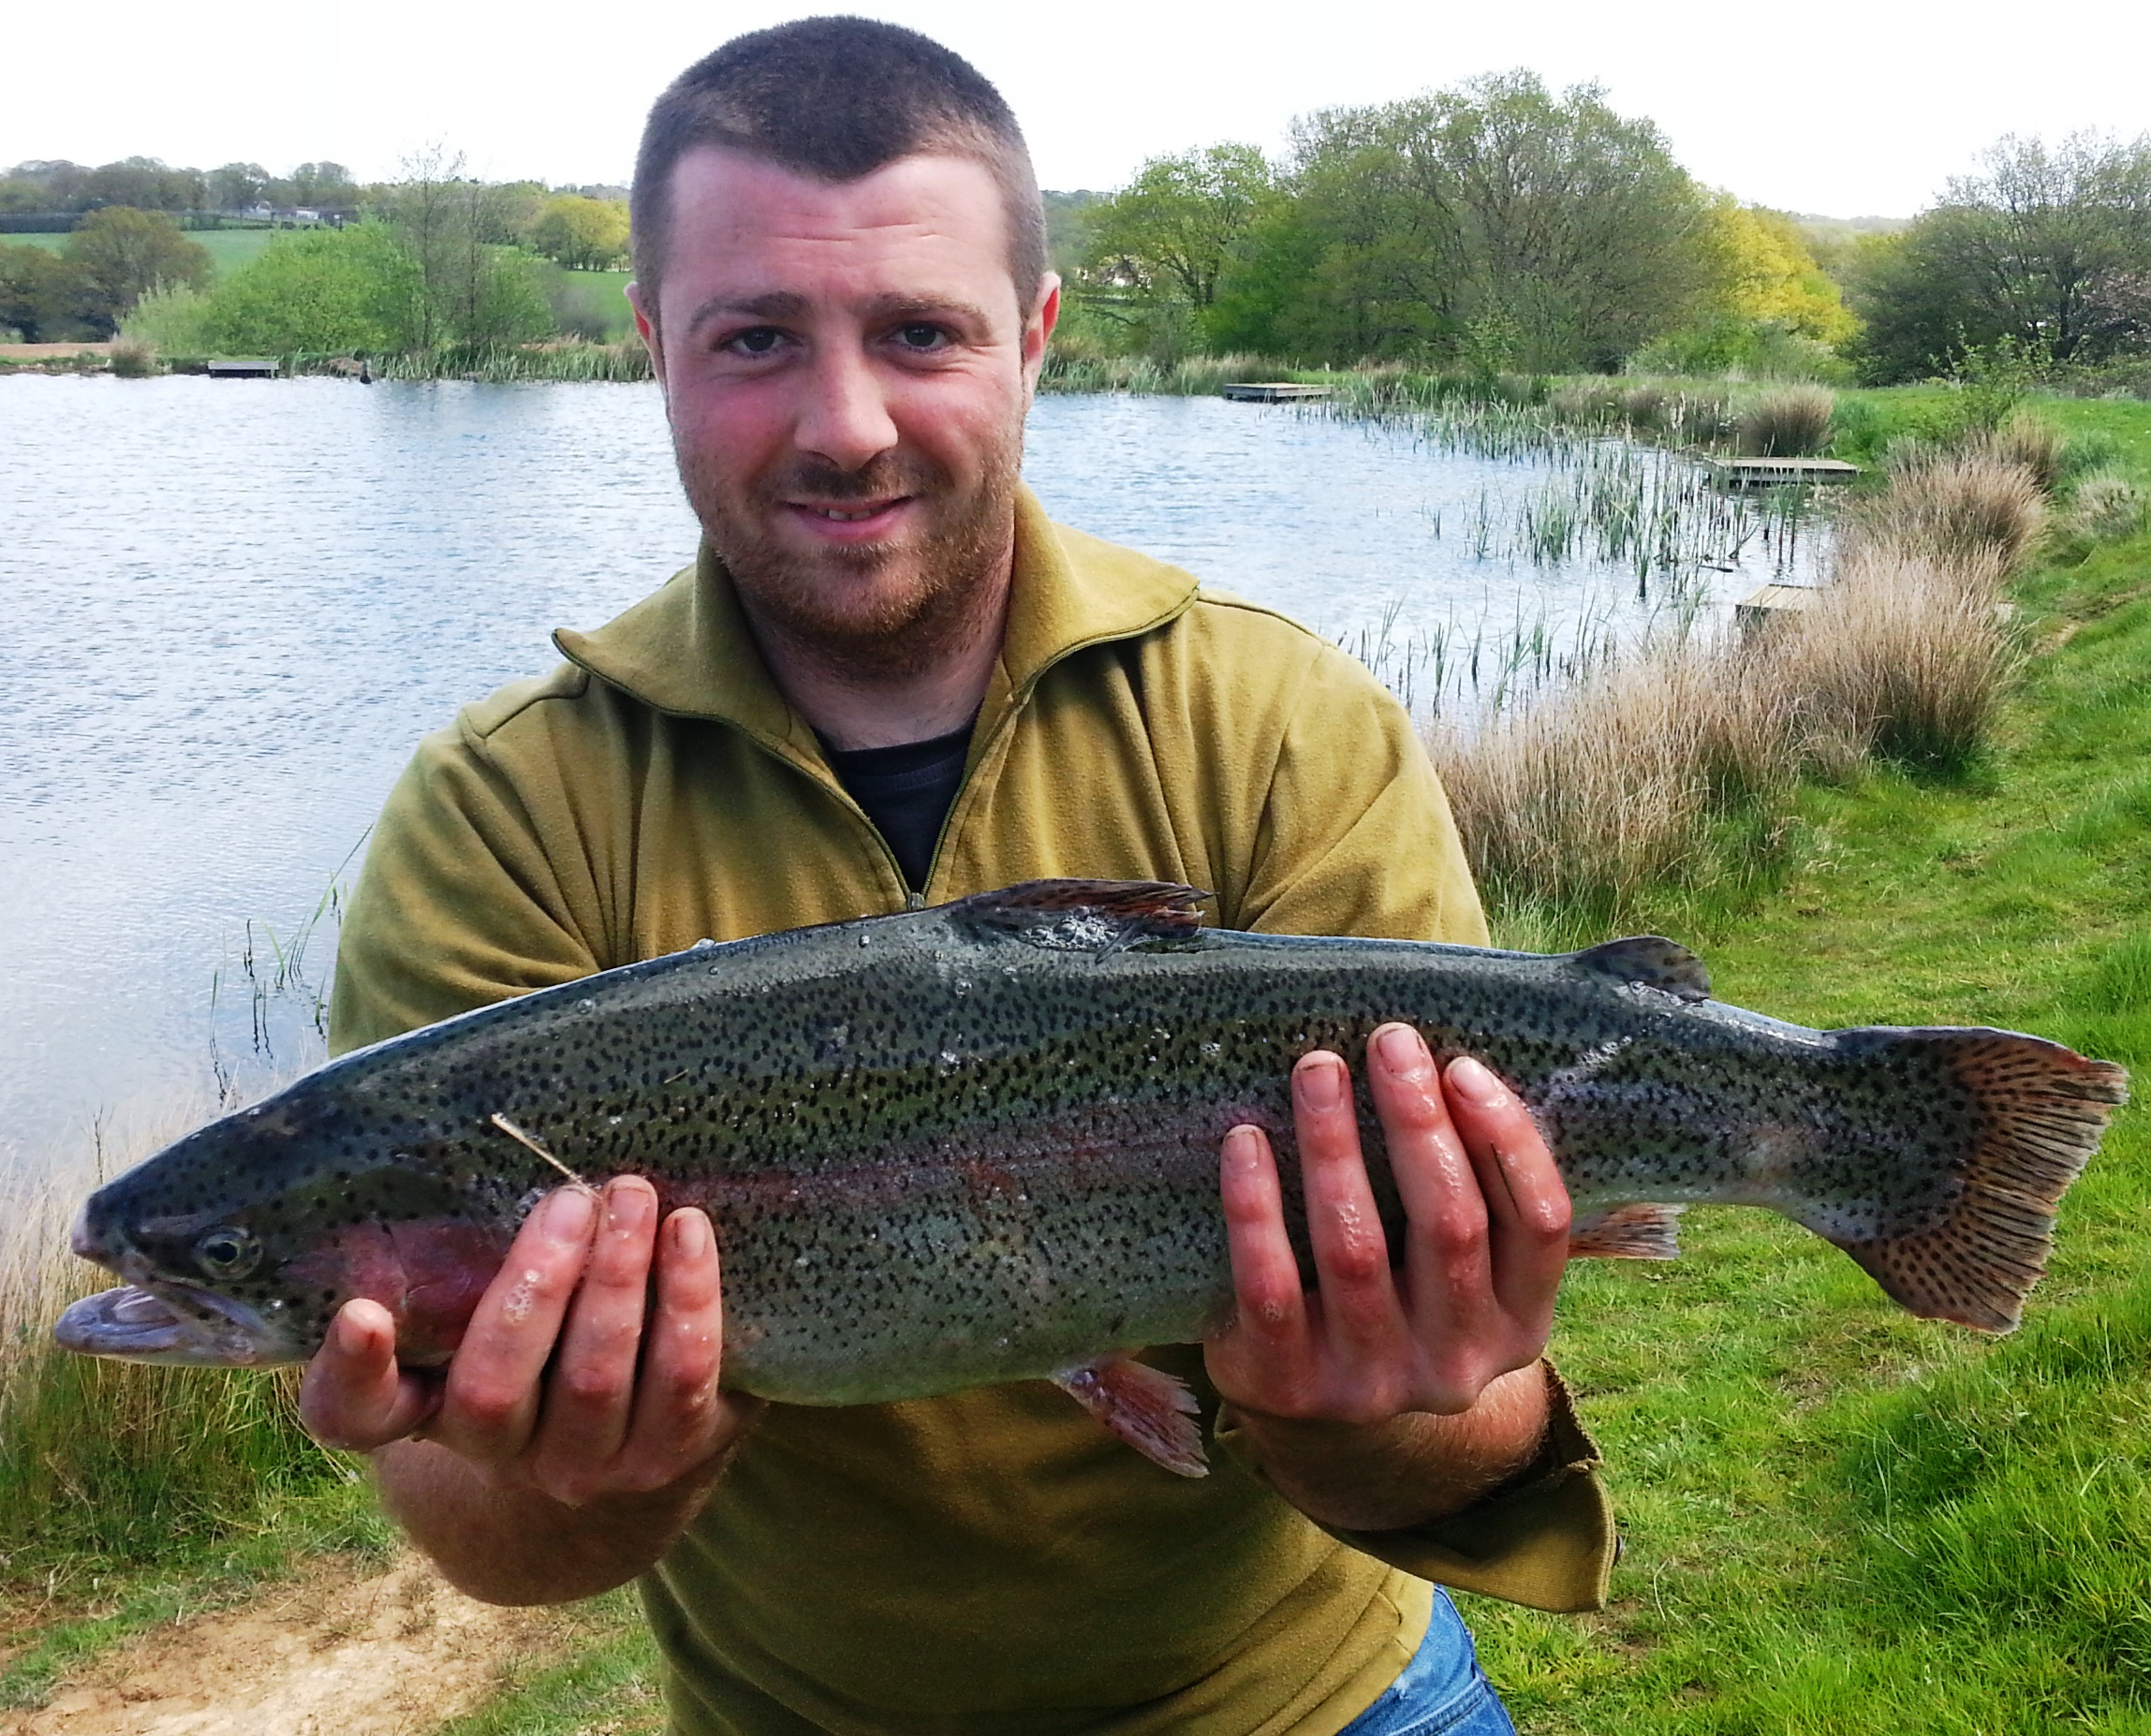 This 6lb rainbow was coaxed onto the bank of Well Lake by a very happy Jake Knott from Battle